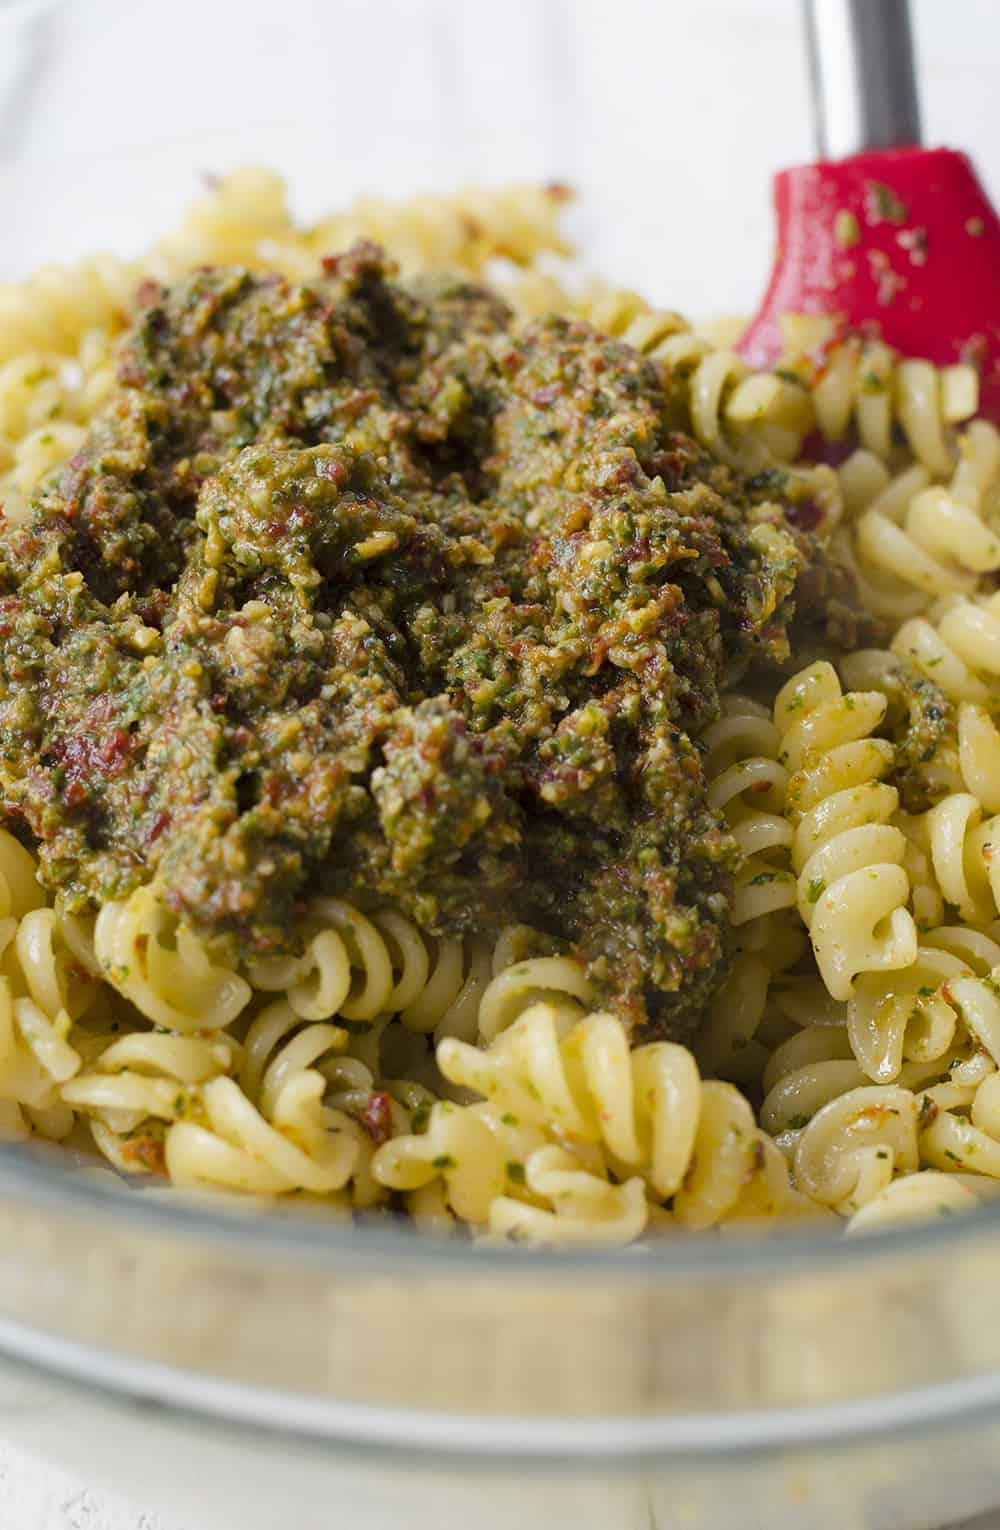 Sun Dried Tomato Pesto Pasta! This 7 ingredient dinner is ready in just 20 minutes, perfect for busy nights! Vegetarian, easily vegan. | www.delishknowledge.com